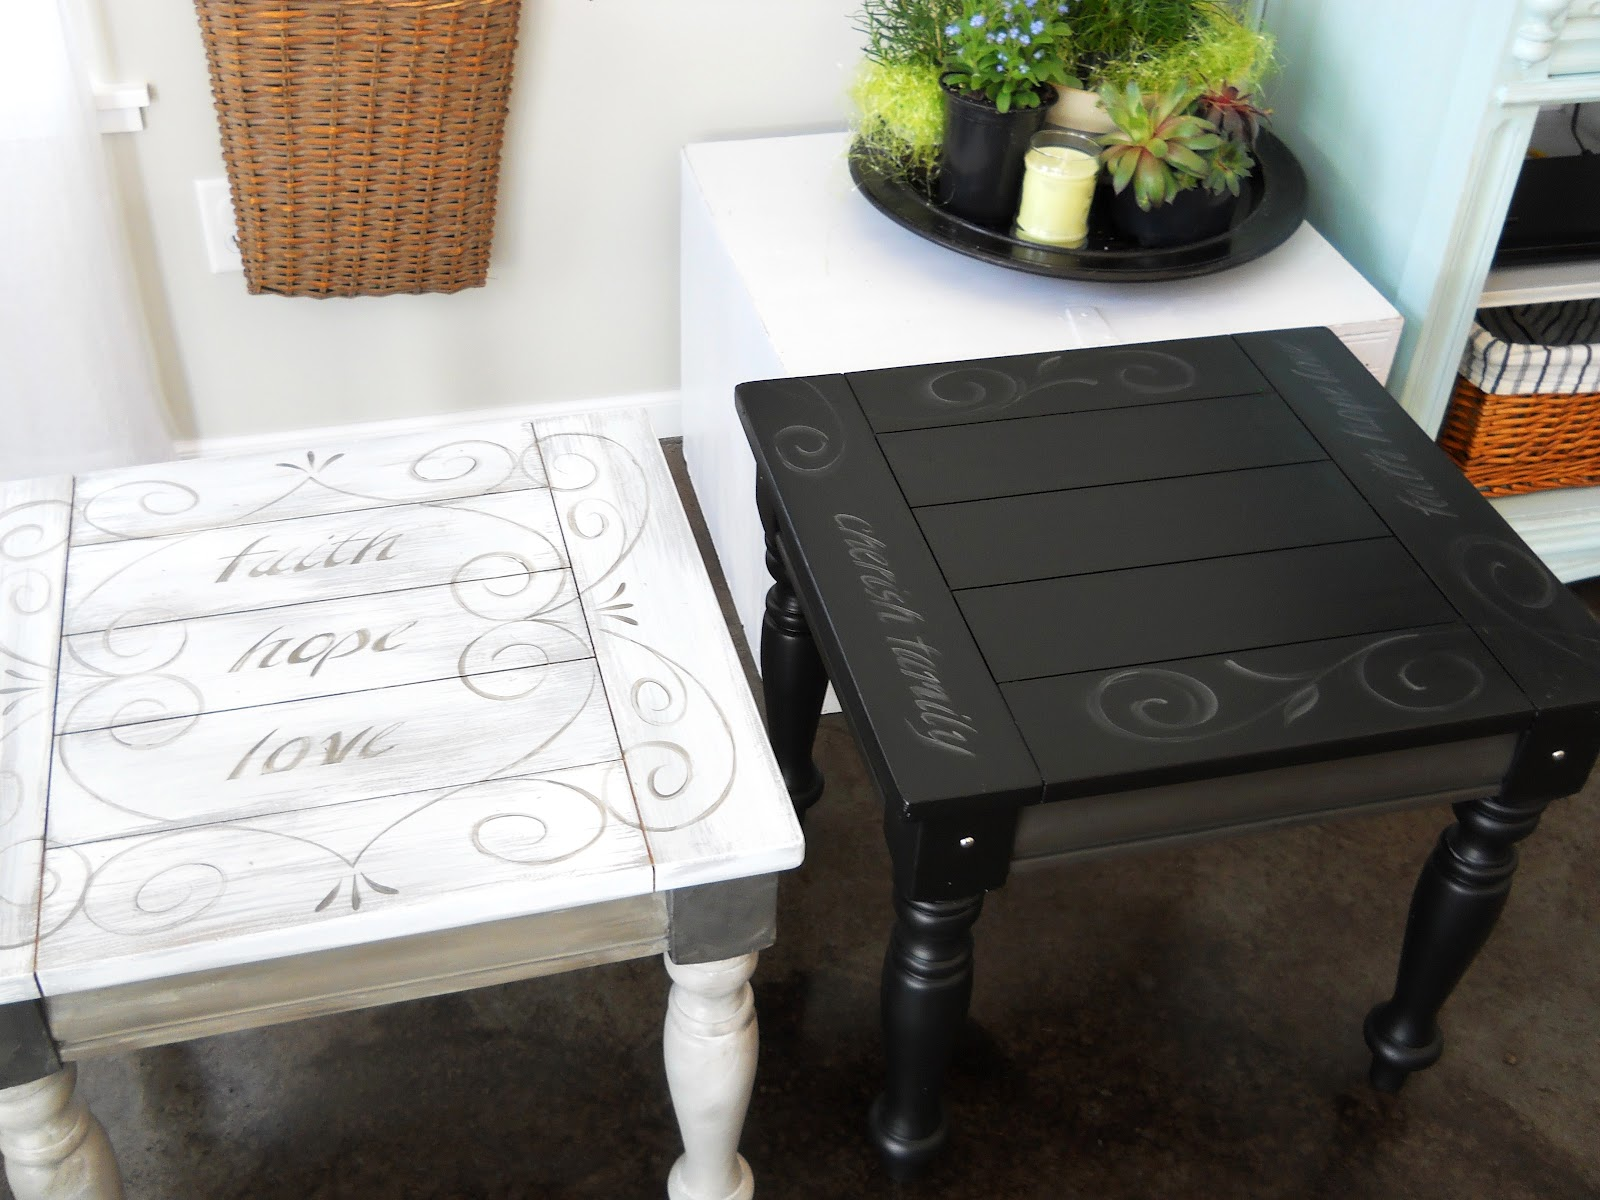 Painting Side Table Ideas Lake Girl Paints Black End Table With Painted Scroll And Text